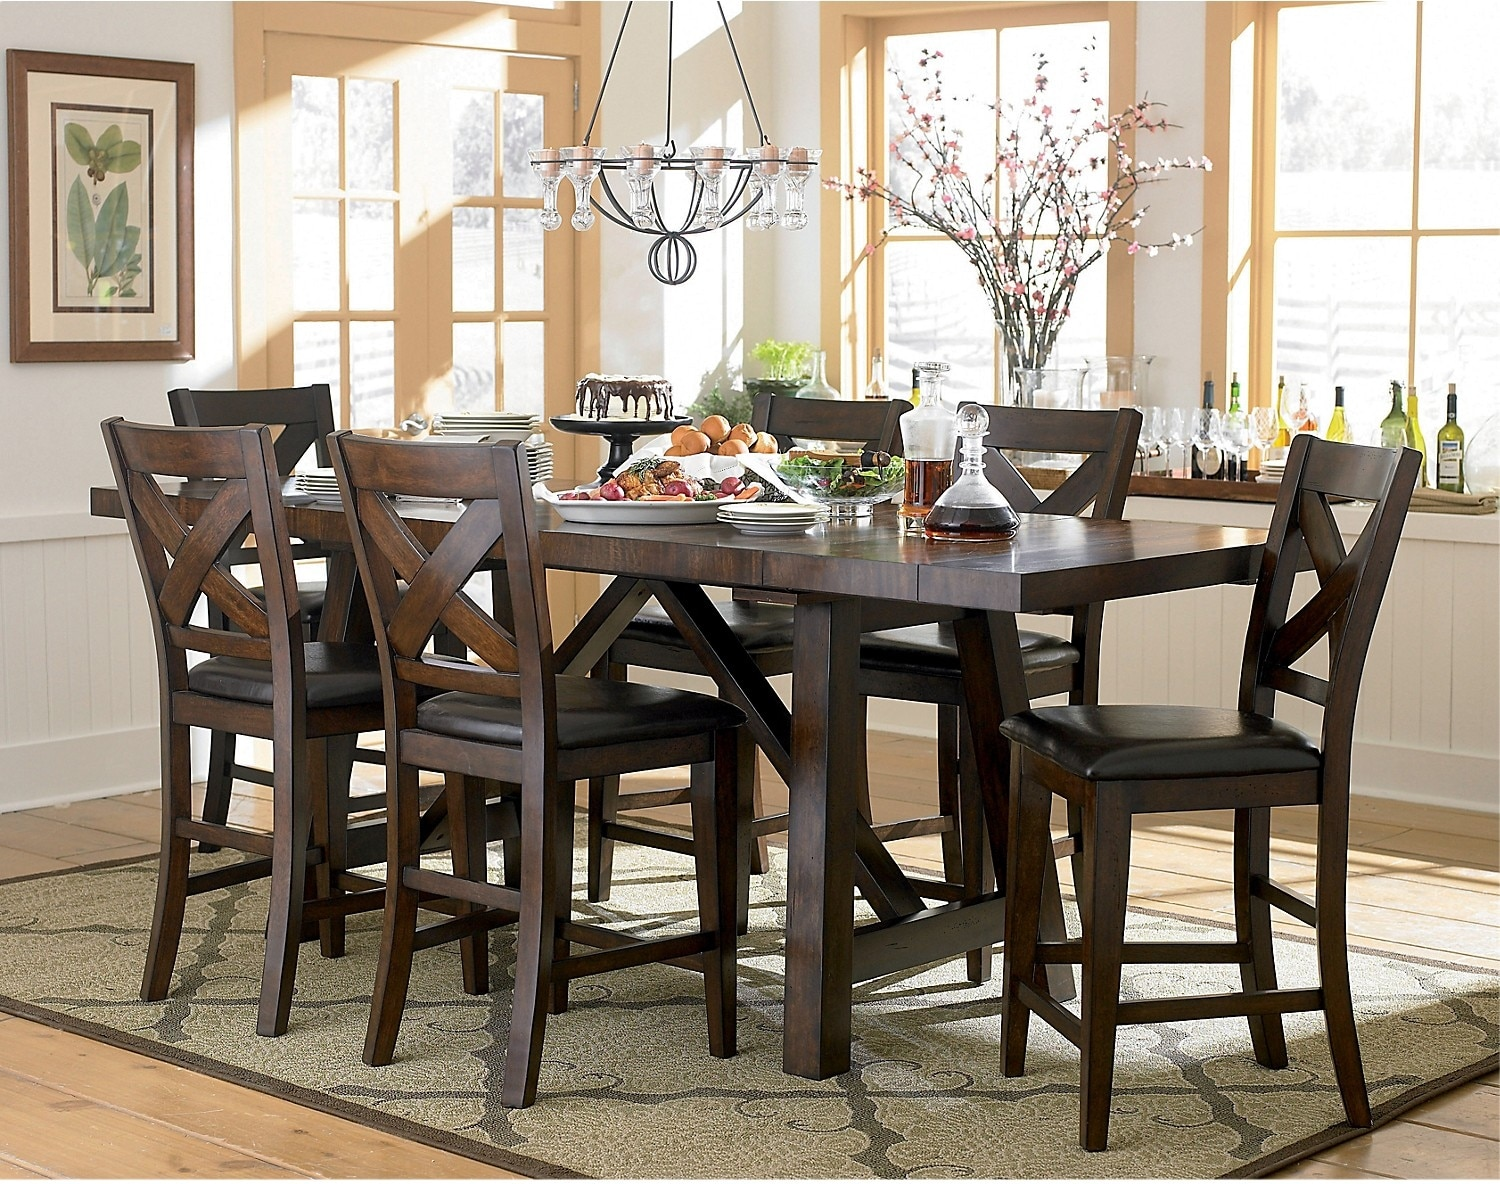 Adara 7 Piece Dining Package